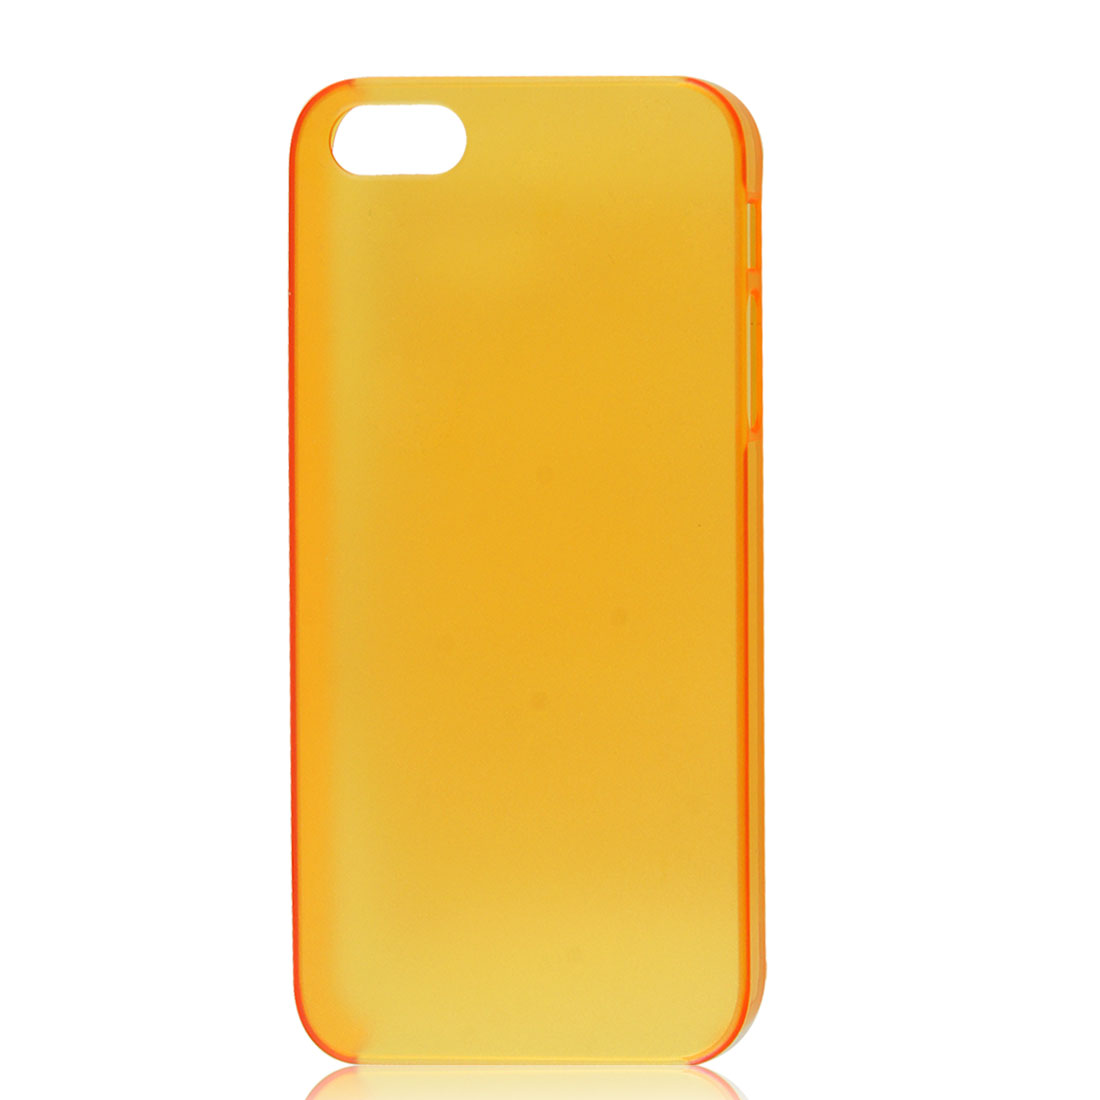 Slim Clear Orange Back Case Protective Cover for iPhone 5 5G - image 1 of 1